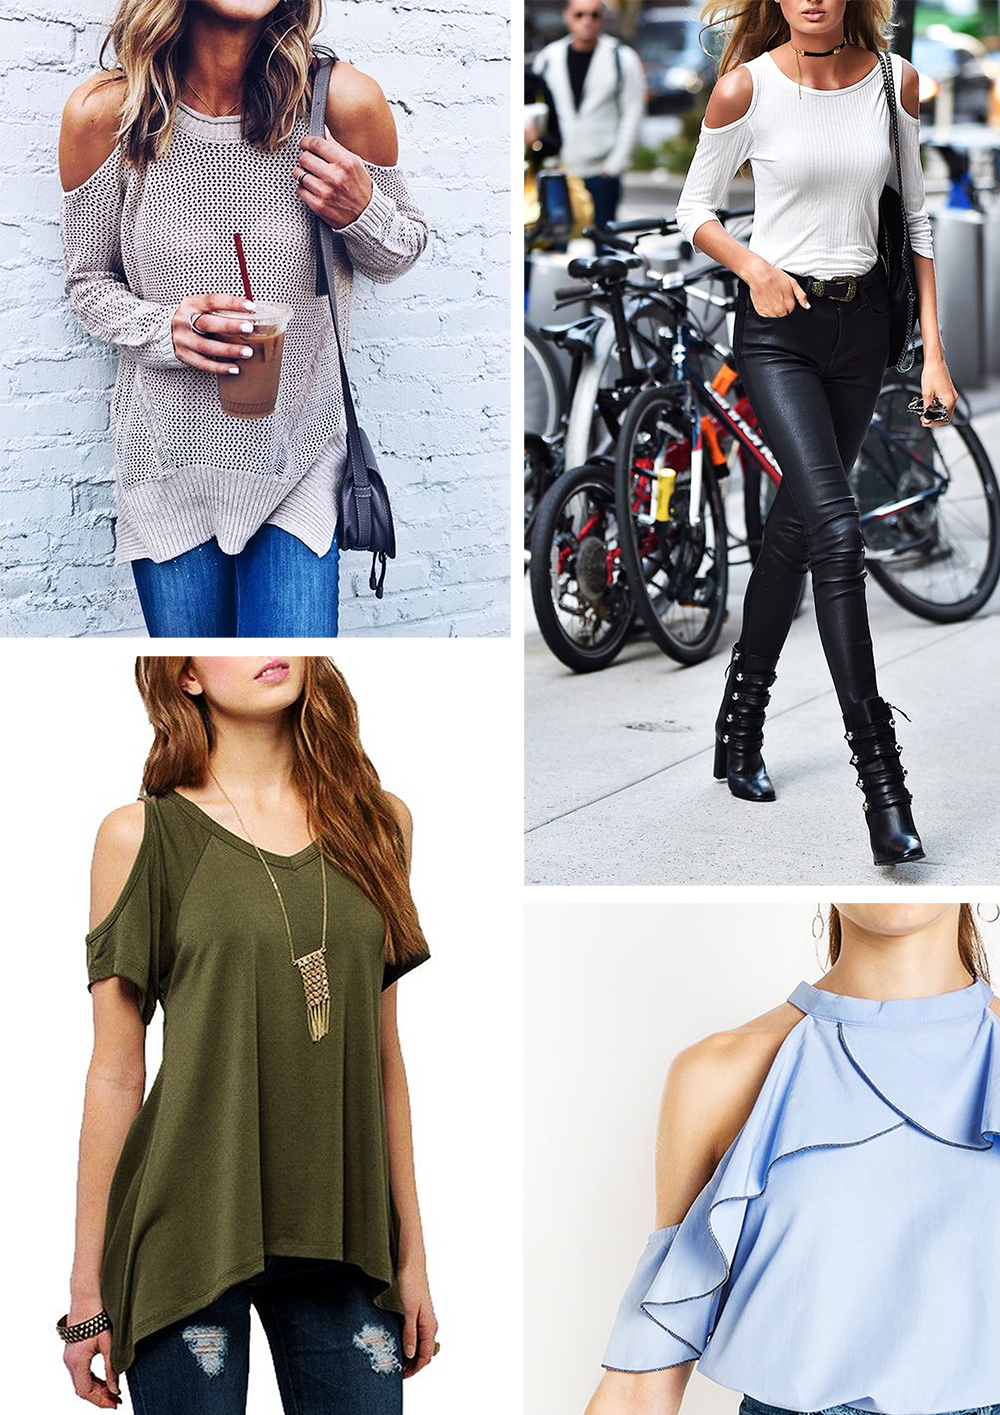 Latest Fashion Trends, Fashion, Style, Cold Shoulders, Photography-5